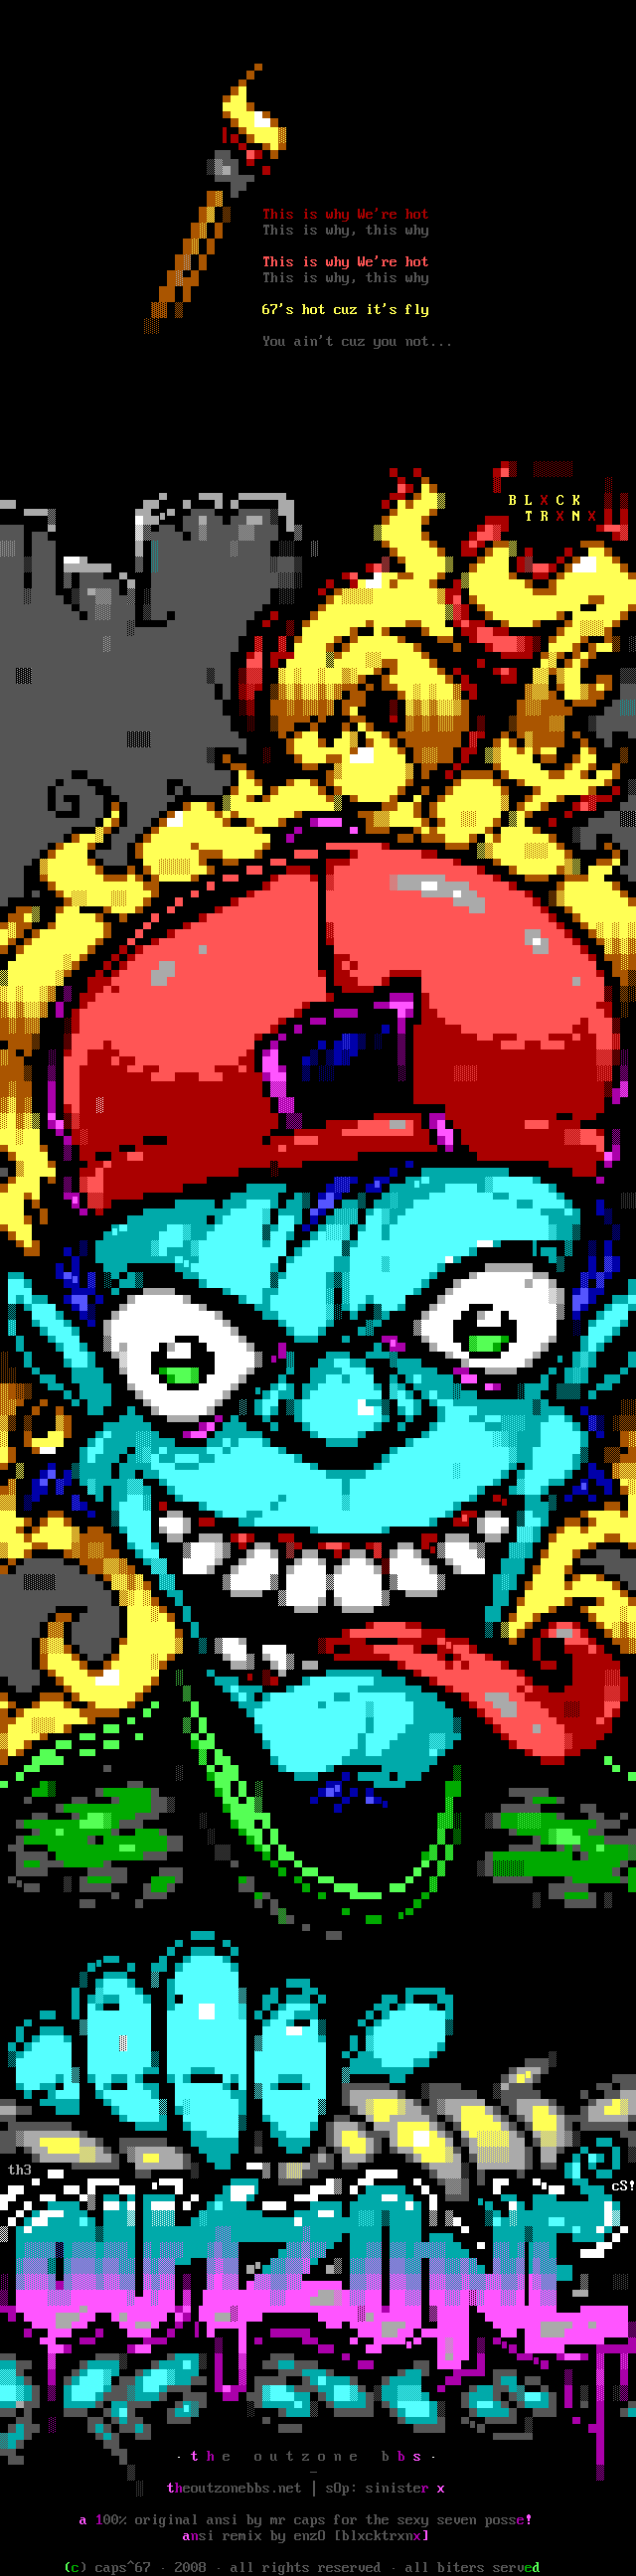 we-outzoneremix.ans, monster, cyan, yellow, green, red, fire, logo, font, hand, tongue, eye, eyes, enzo, ansi joint, joint